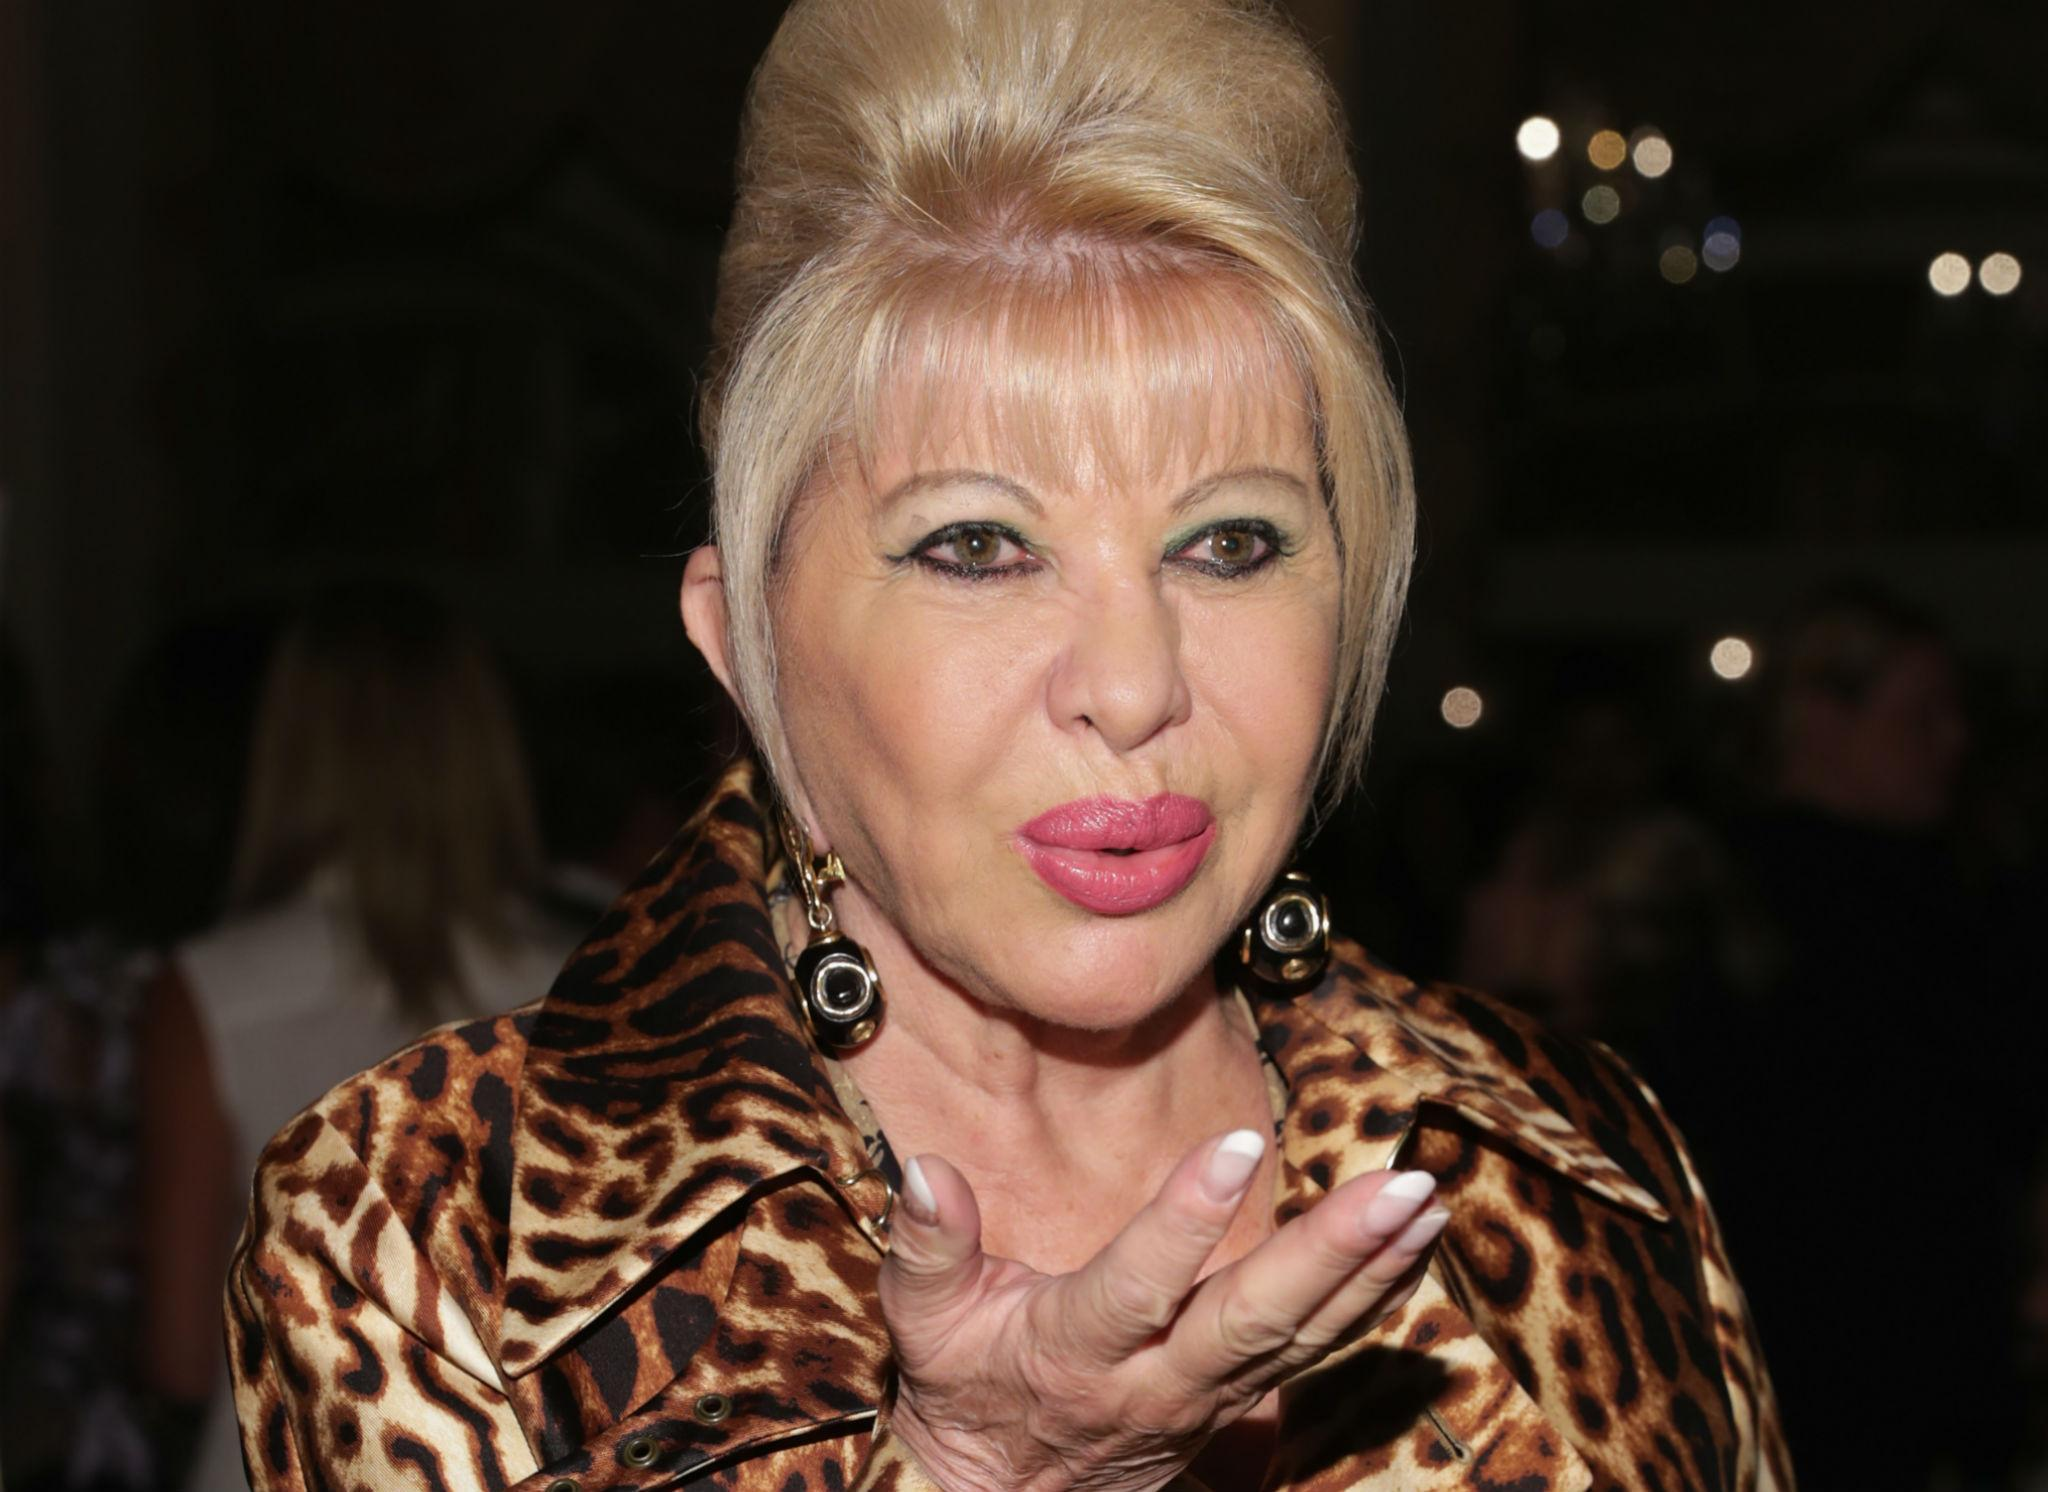 Ivana Trump: Donald is 'definitely not racist'. He just says 'silly things'